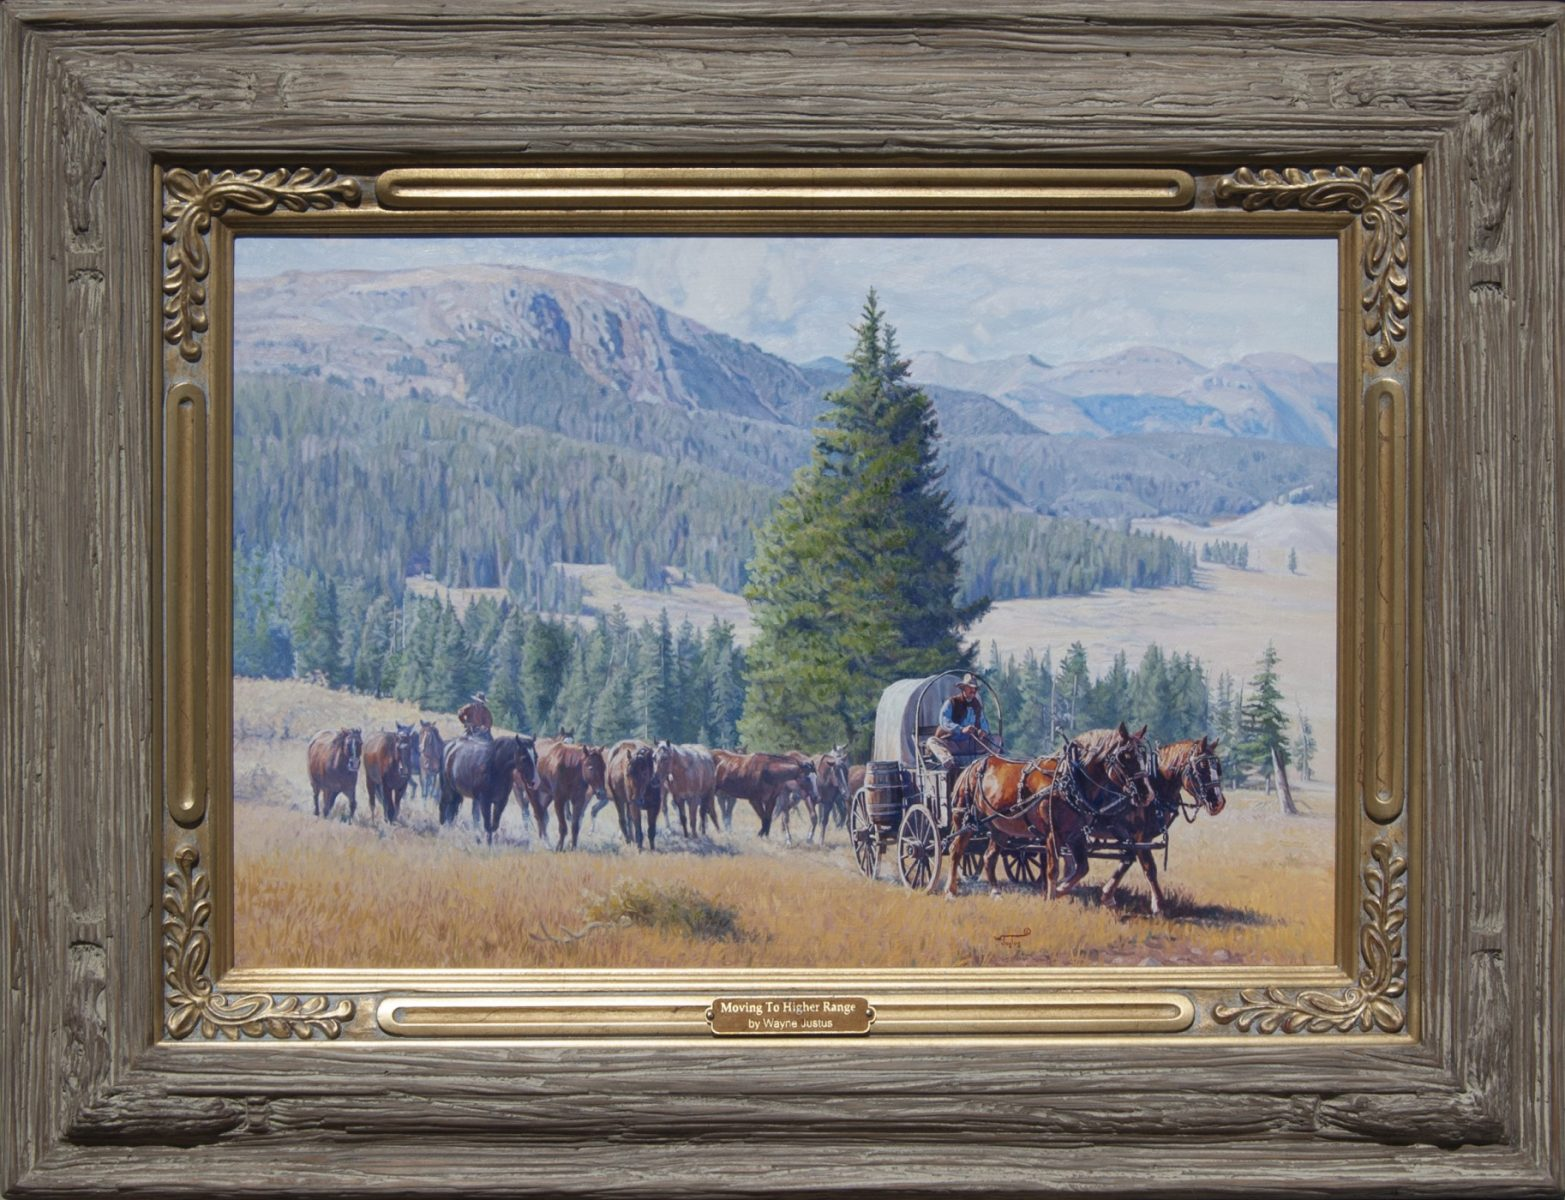 Painting of a covered wagon procession by artist Wayne Justus